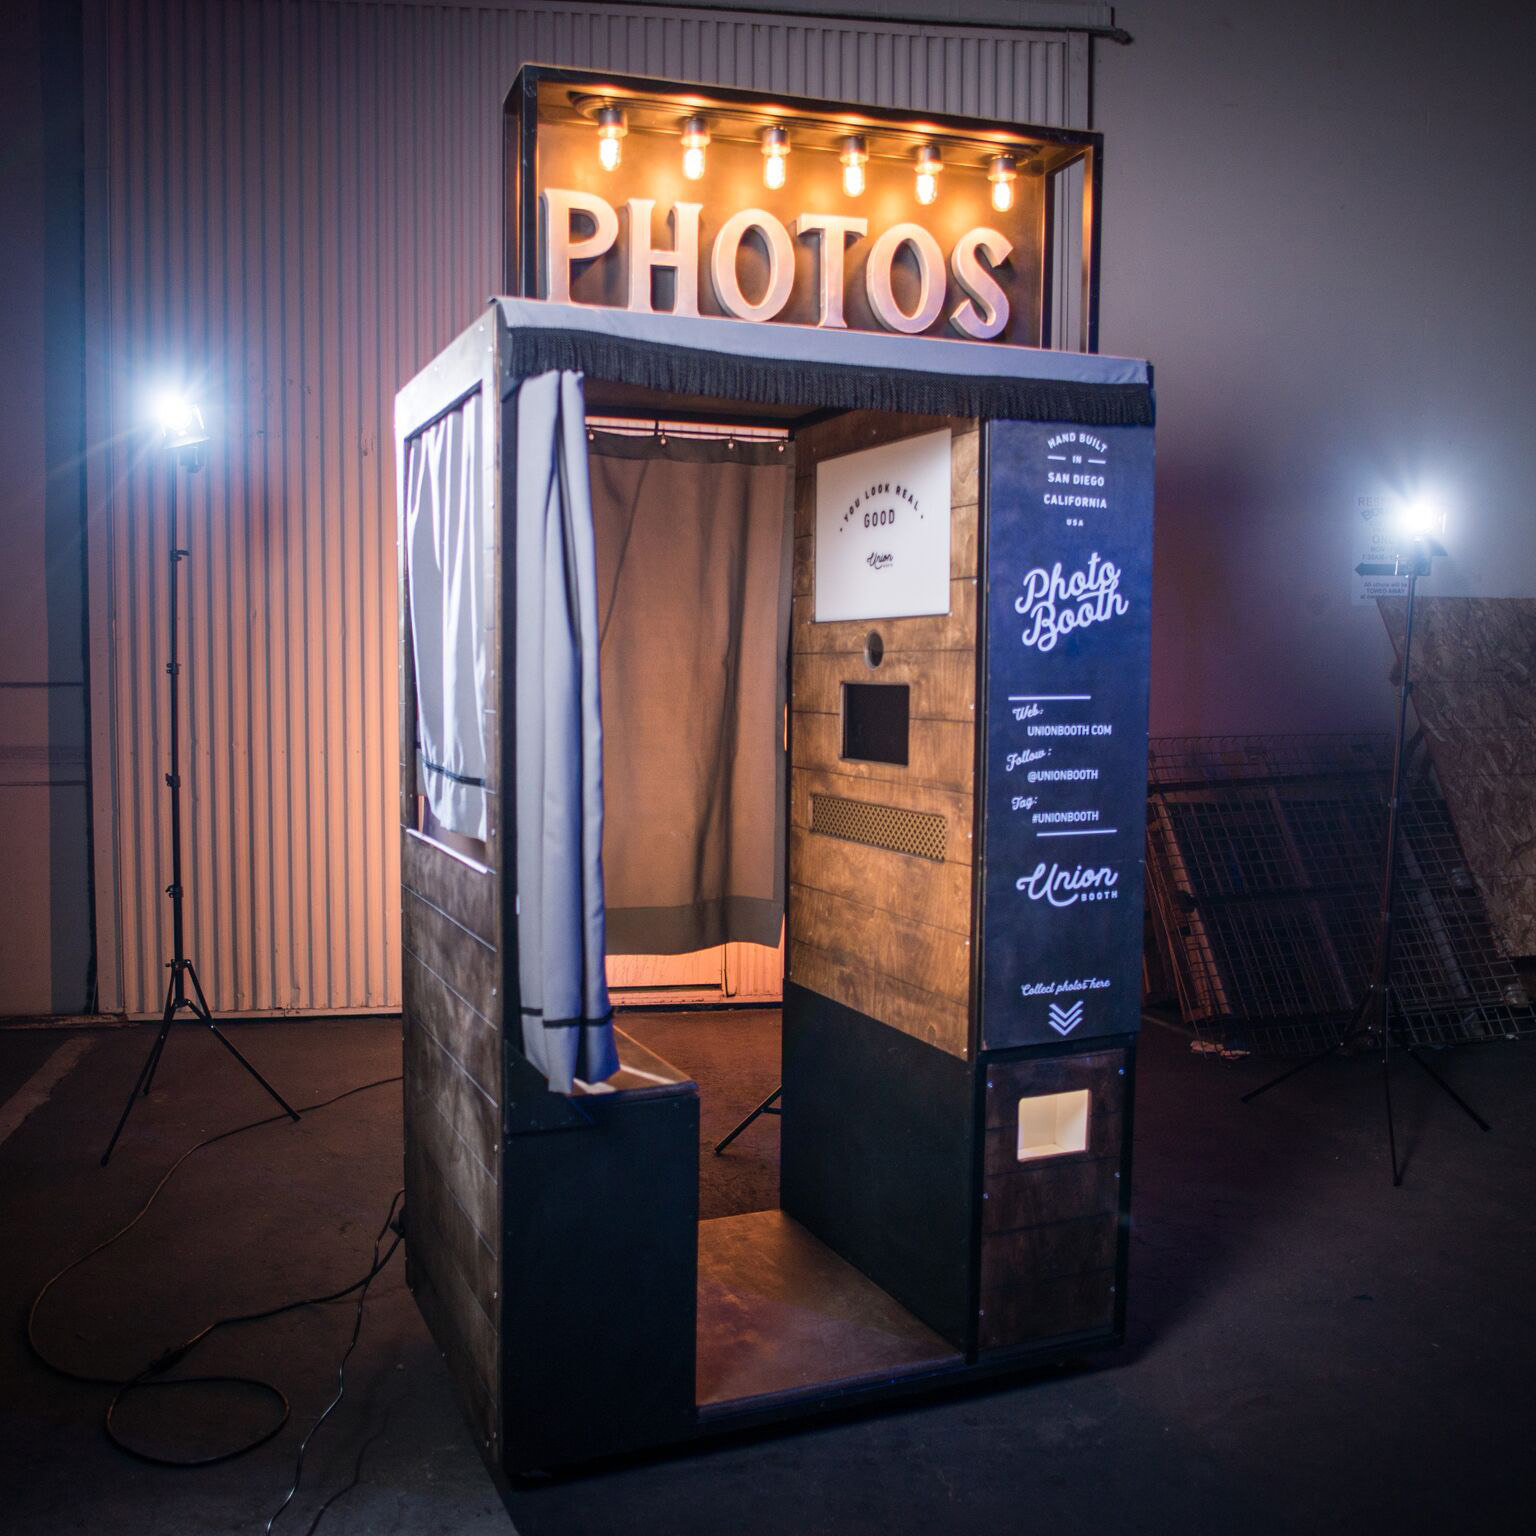 rent-the-kenwood-photo-booth.jpg